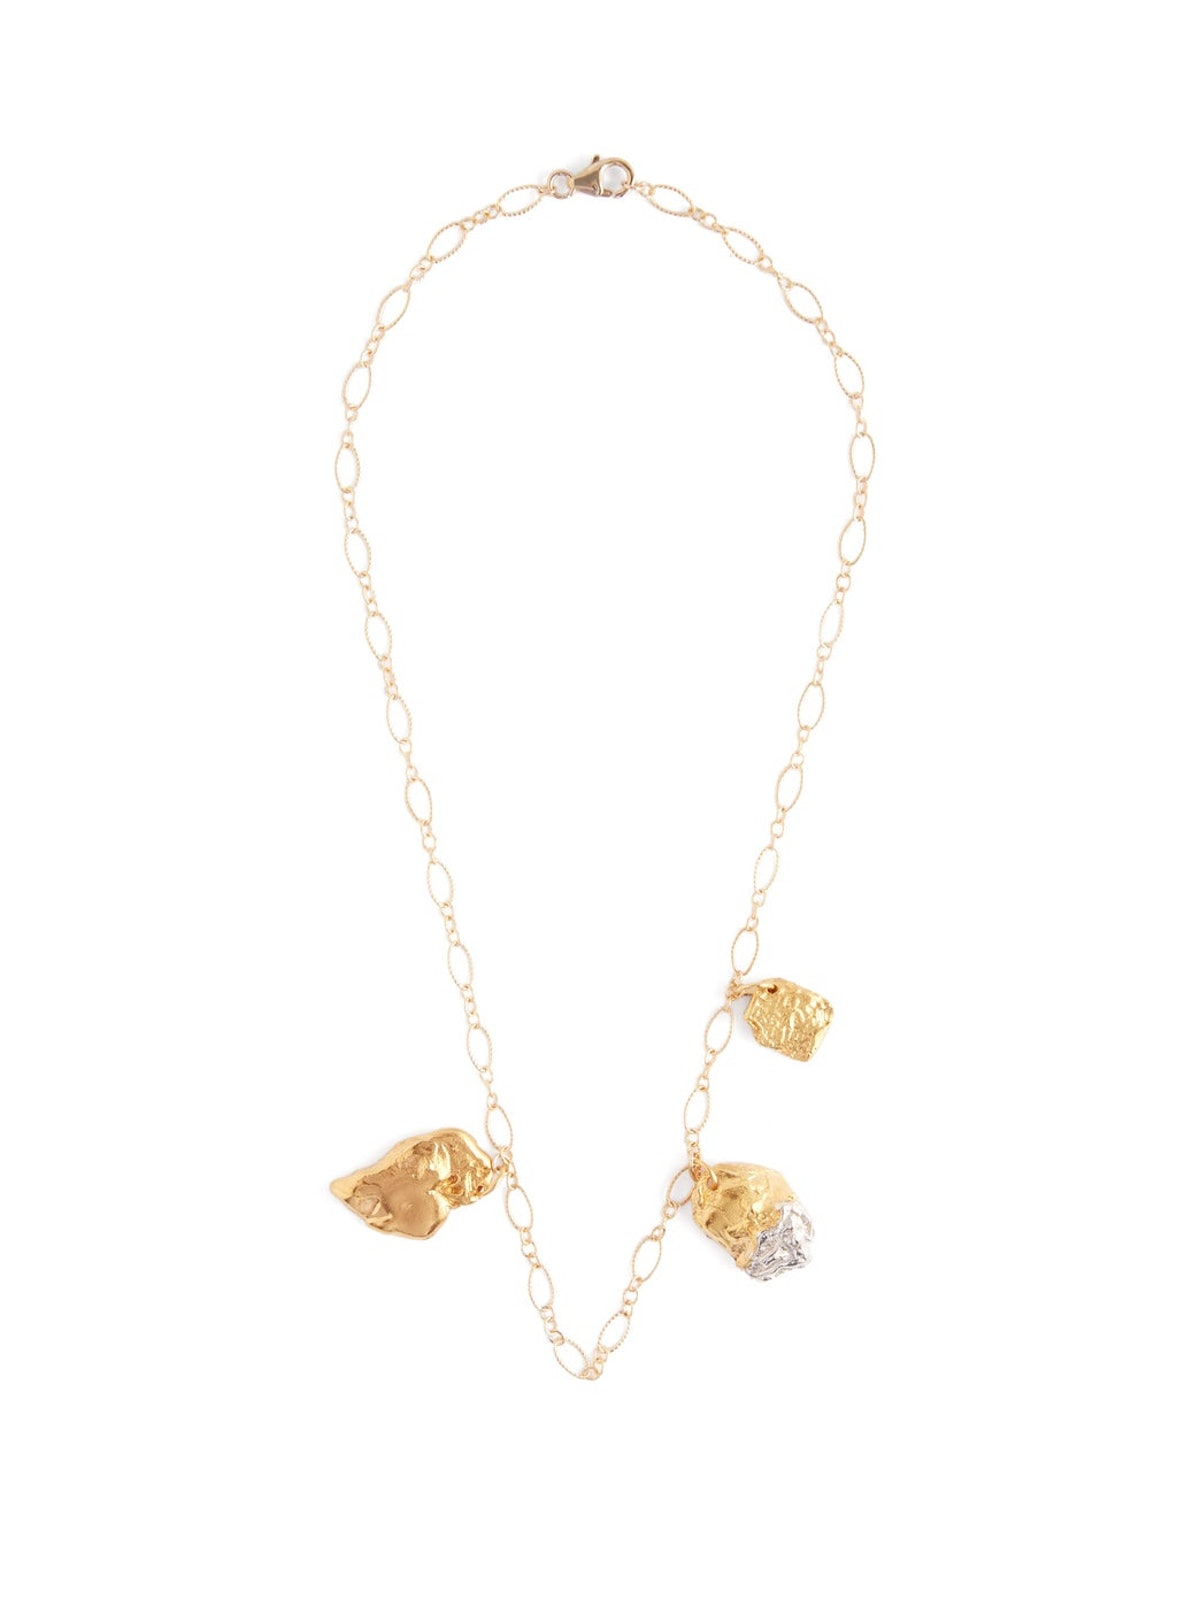 The X-Chrome Amore 24kt Gold-Plated Necklace